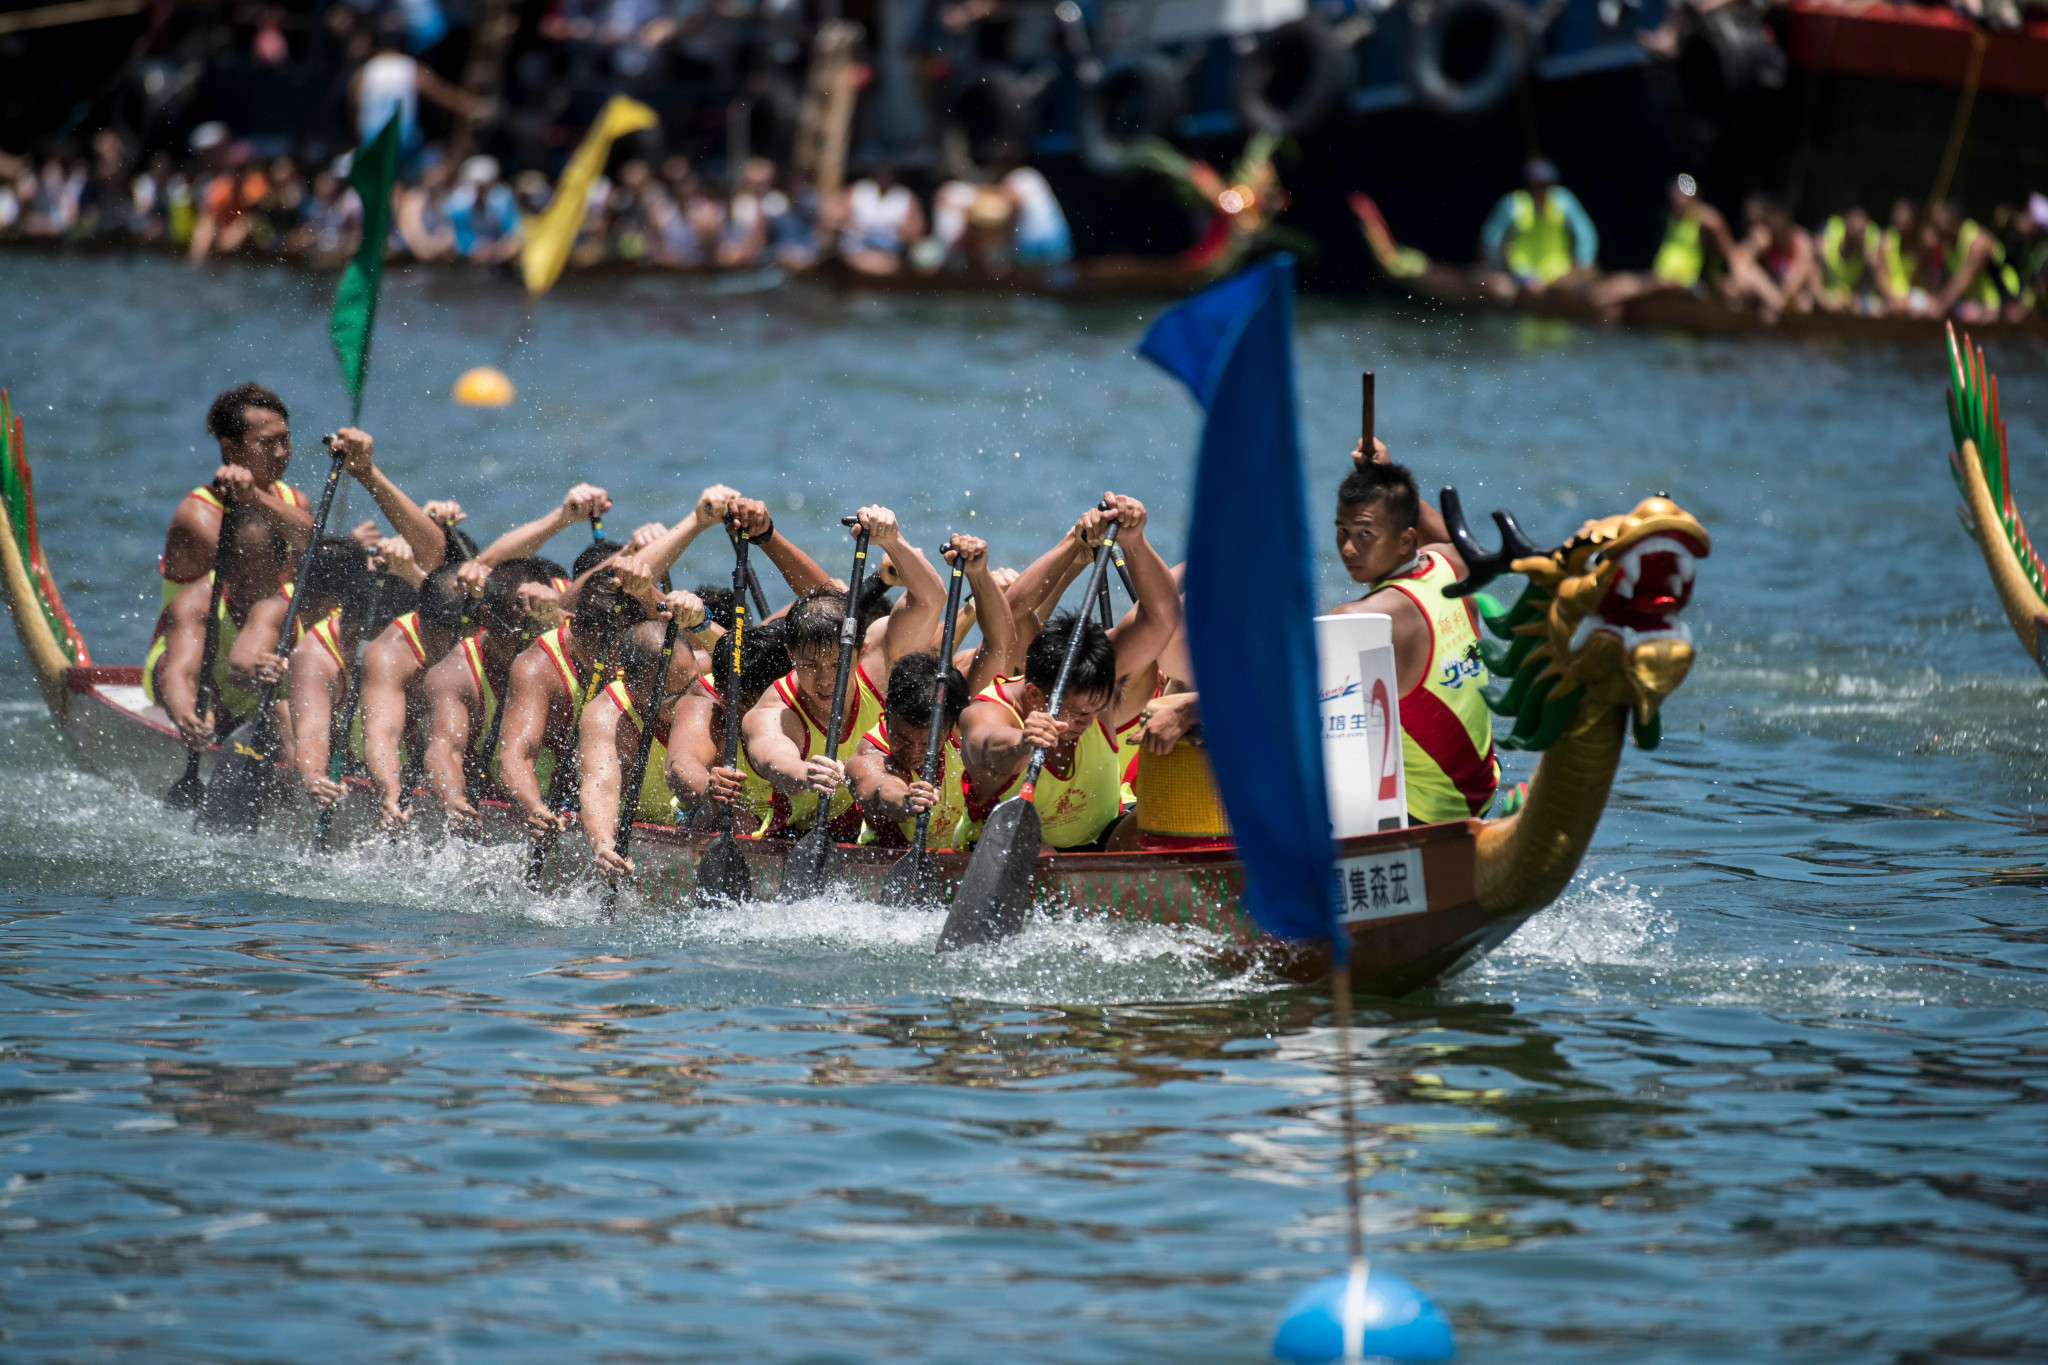 World Dragon Boat Racing Championships set to begin in Pattaya